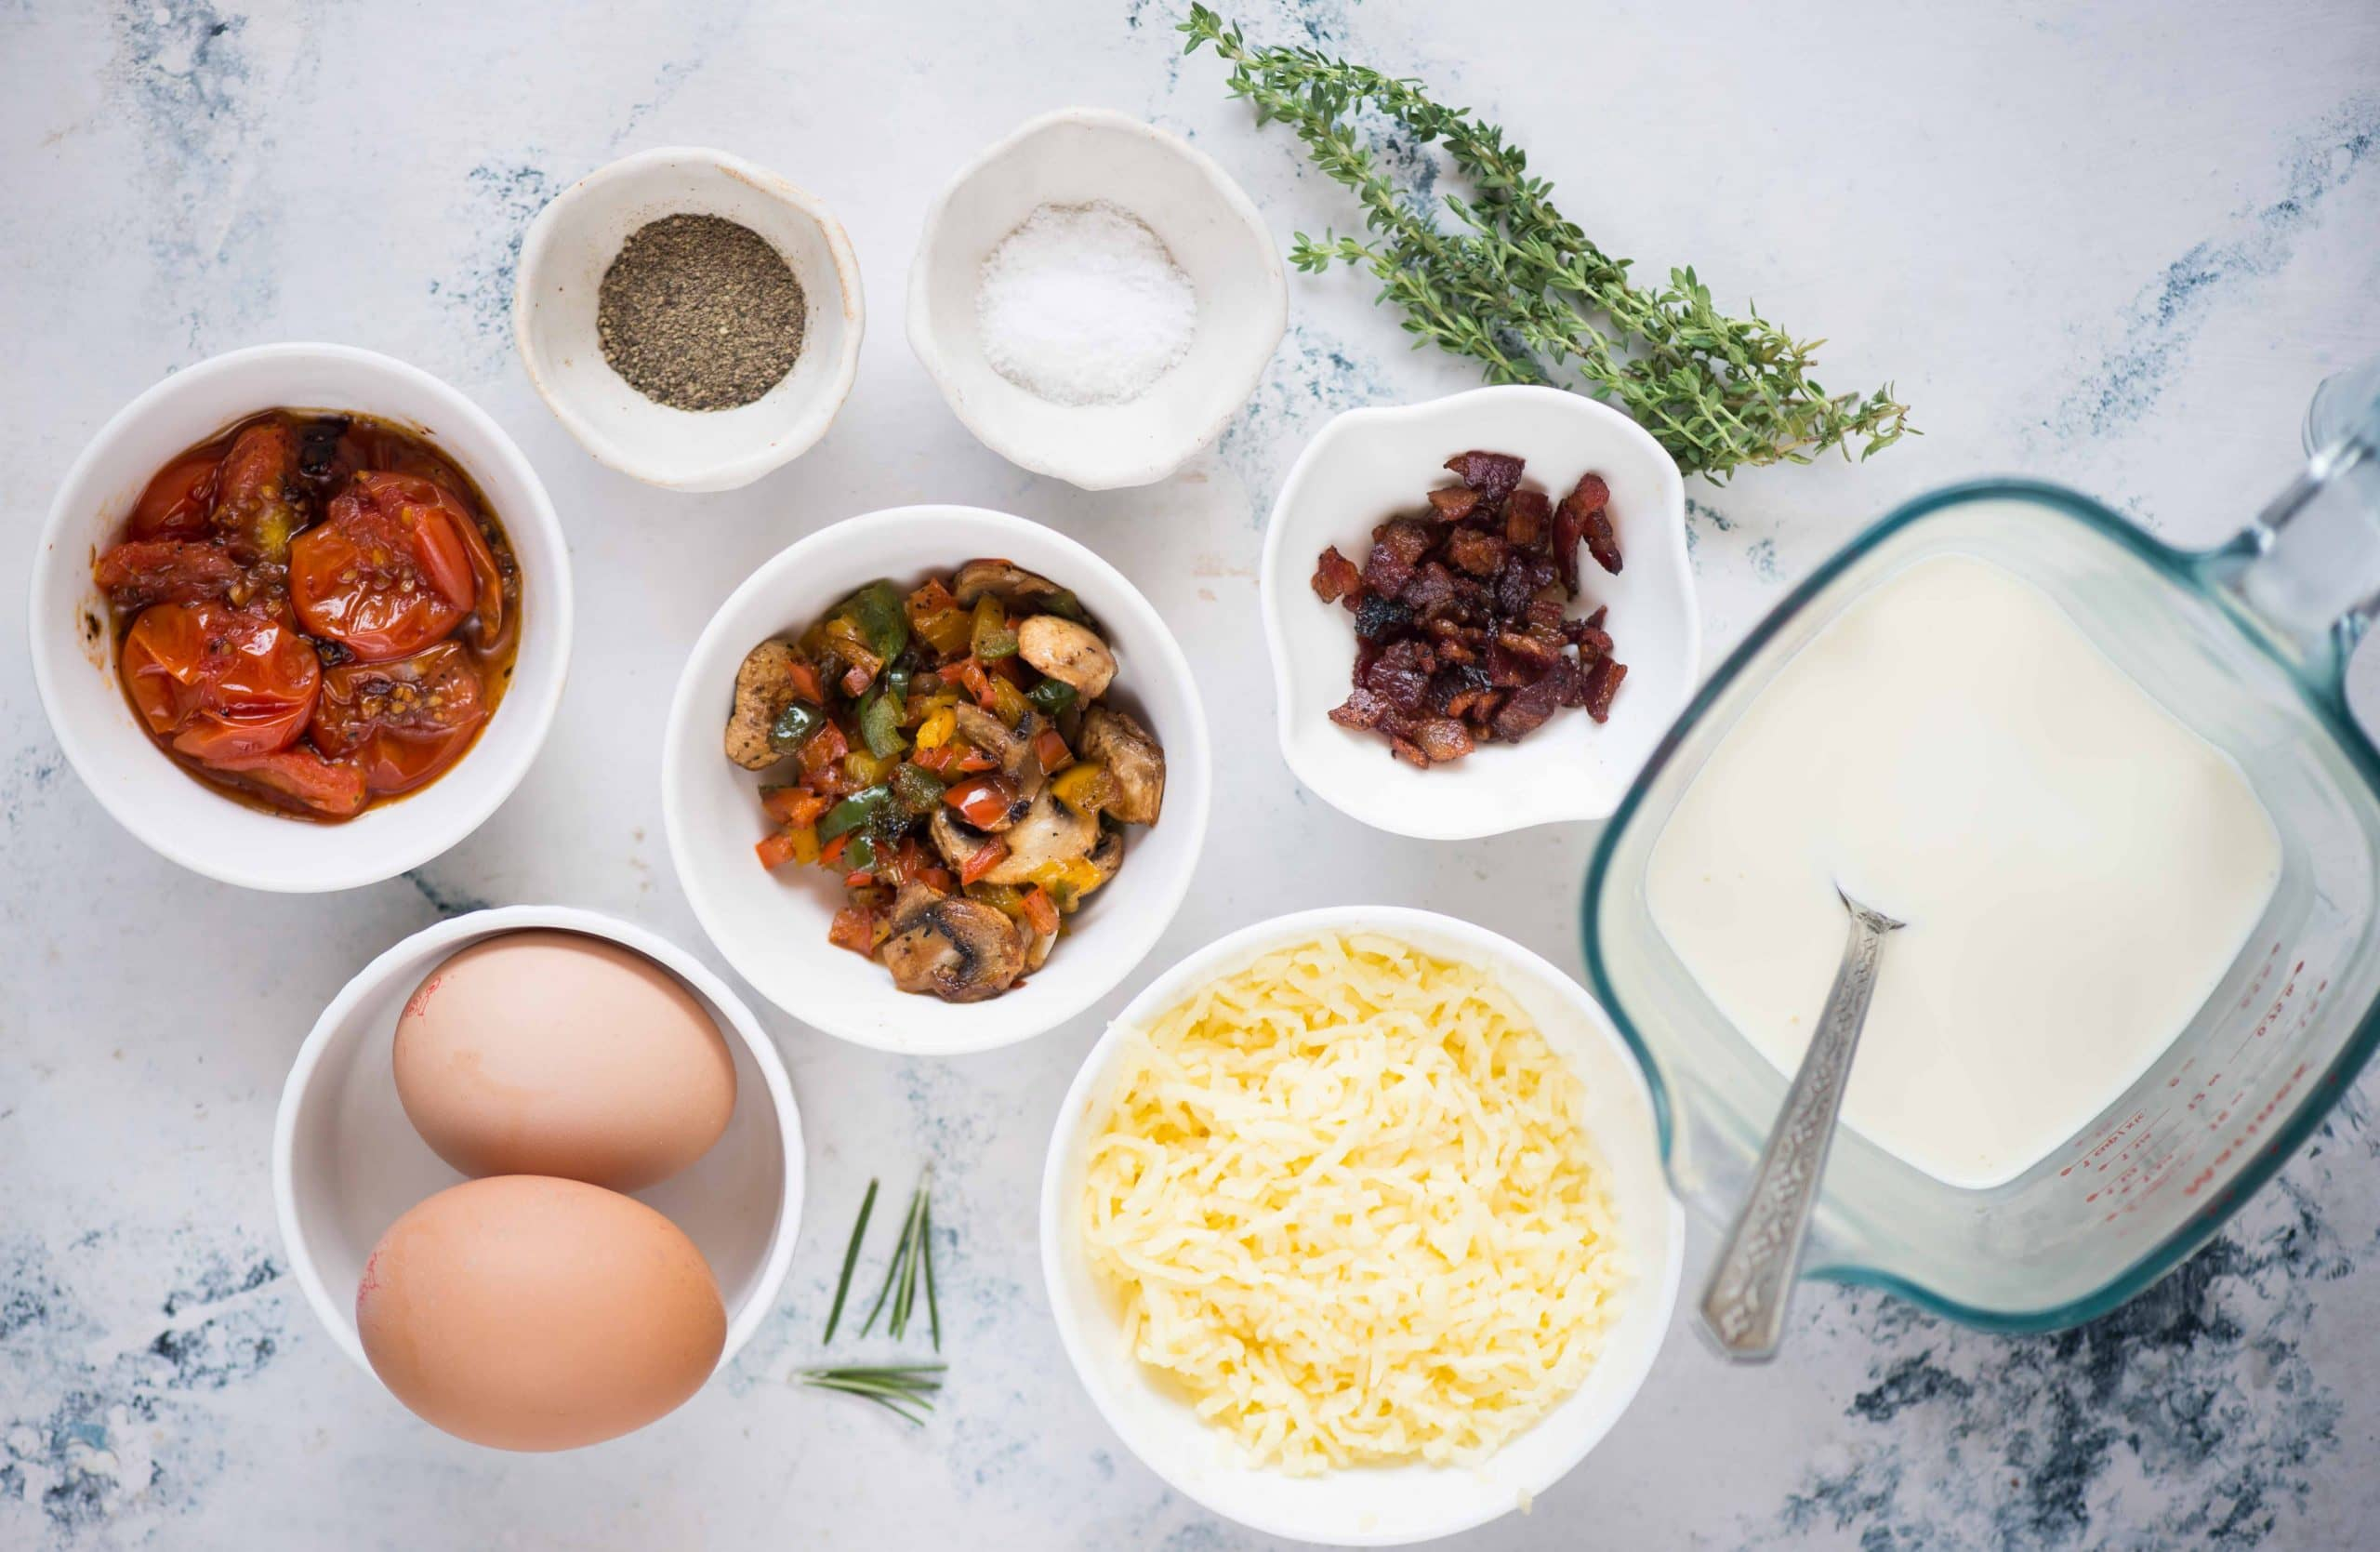 Ingredients for baked eggs.